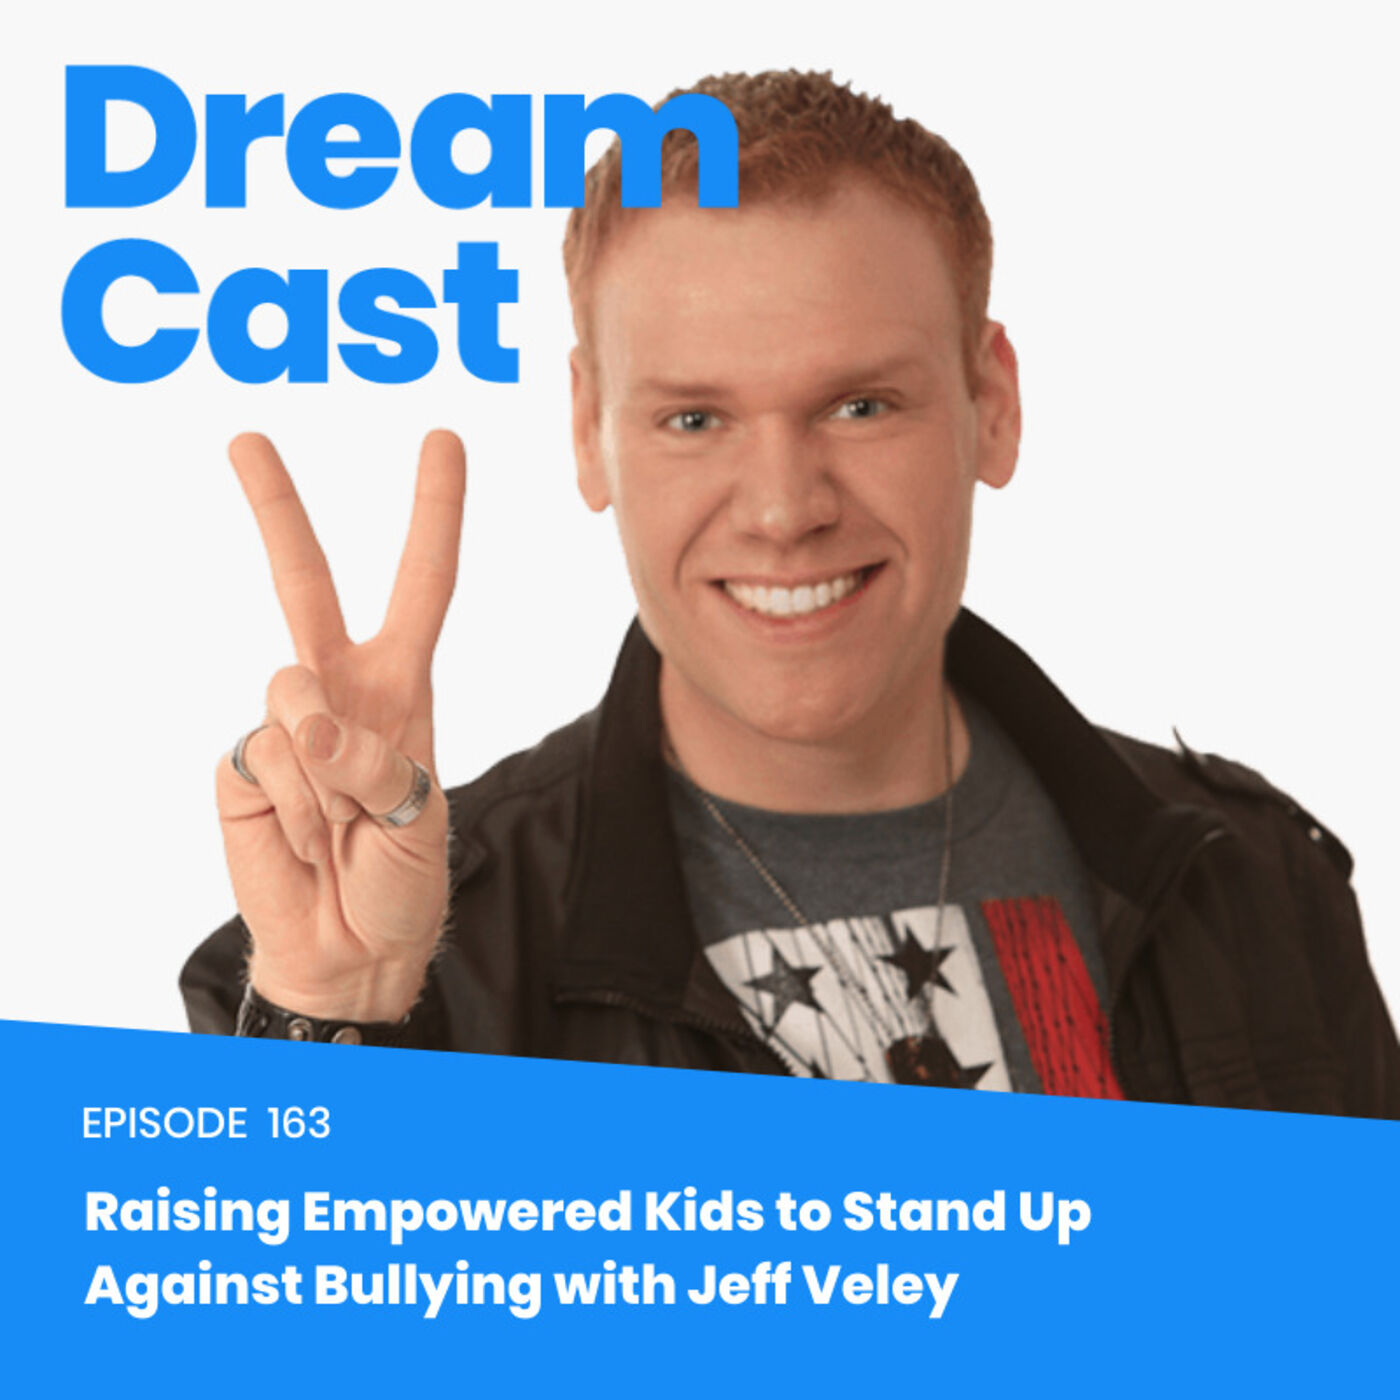 Episode 163 – Raising Empowered Kids to Stand Up Against Bullying with Jeff Veley